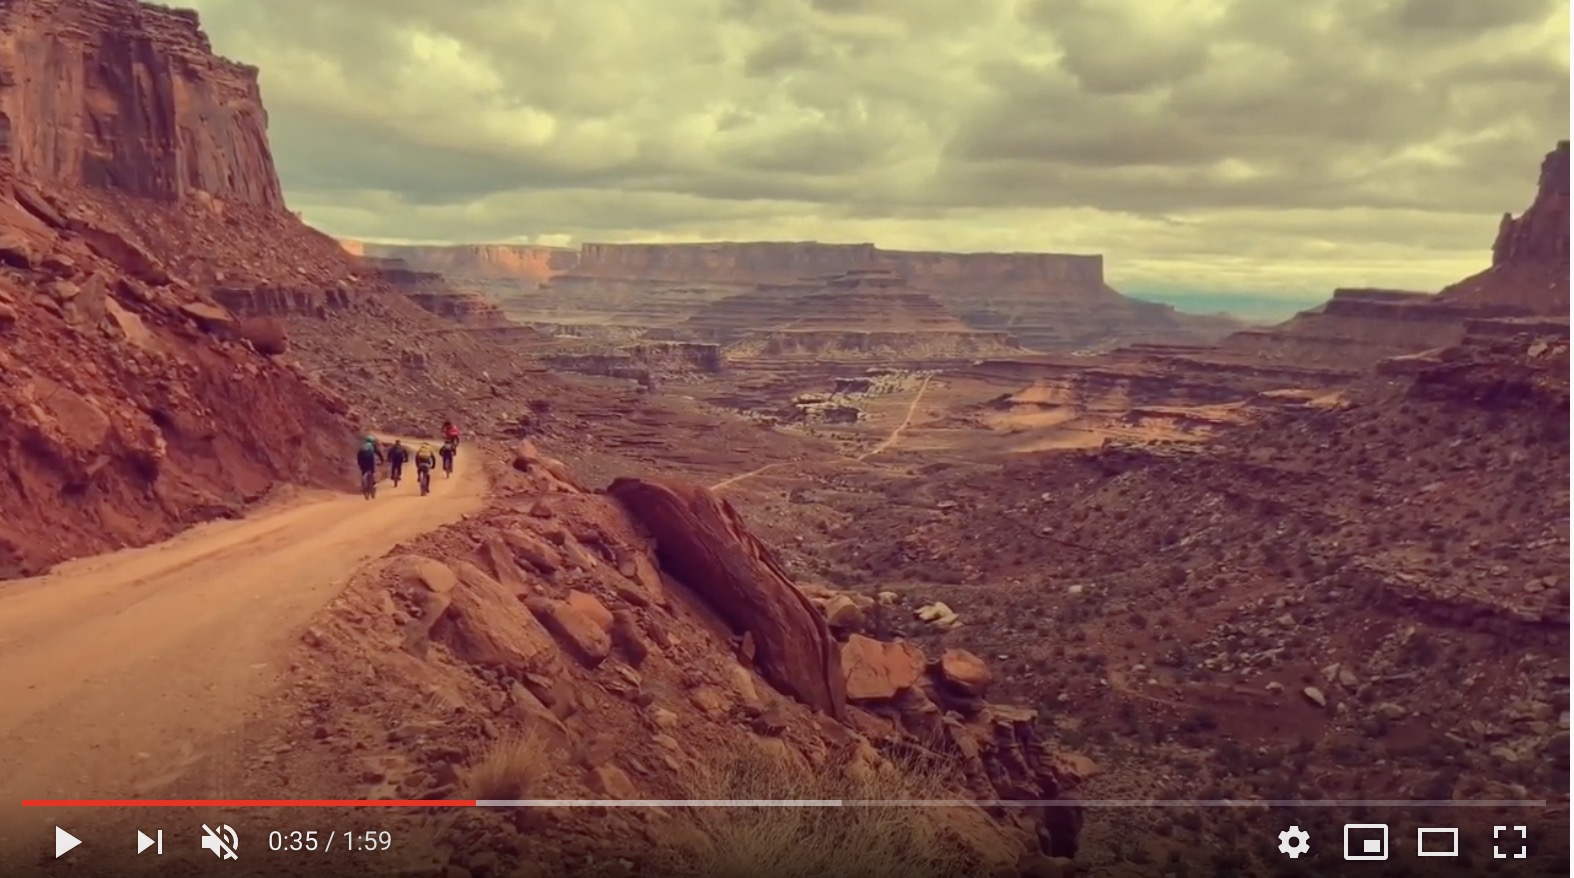 Canyonlands NP Full Day Descriptive Video #1